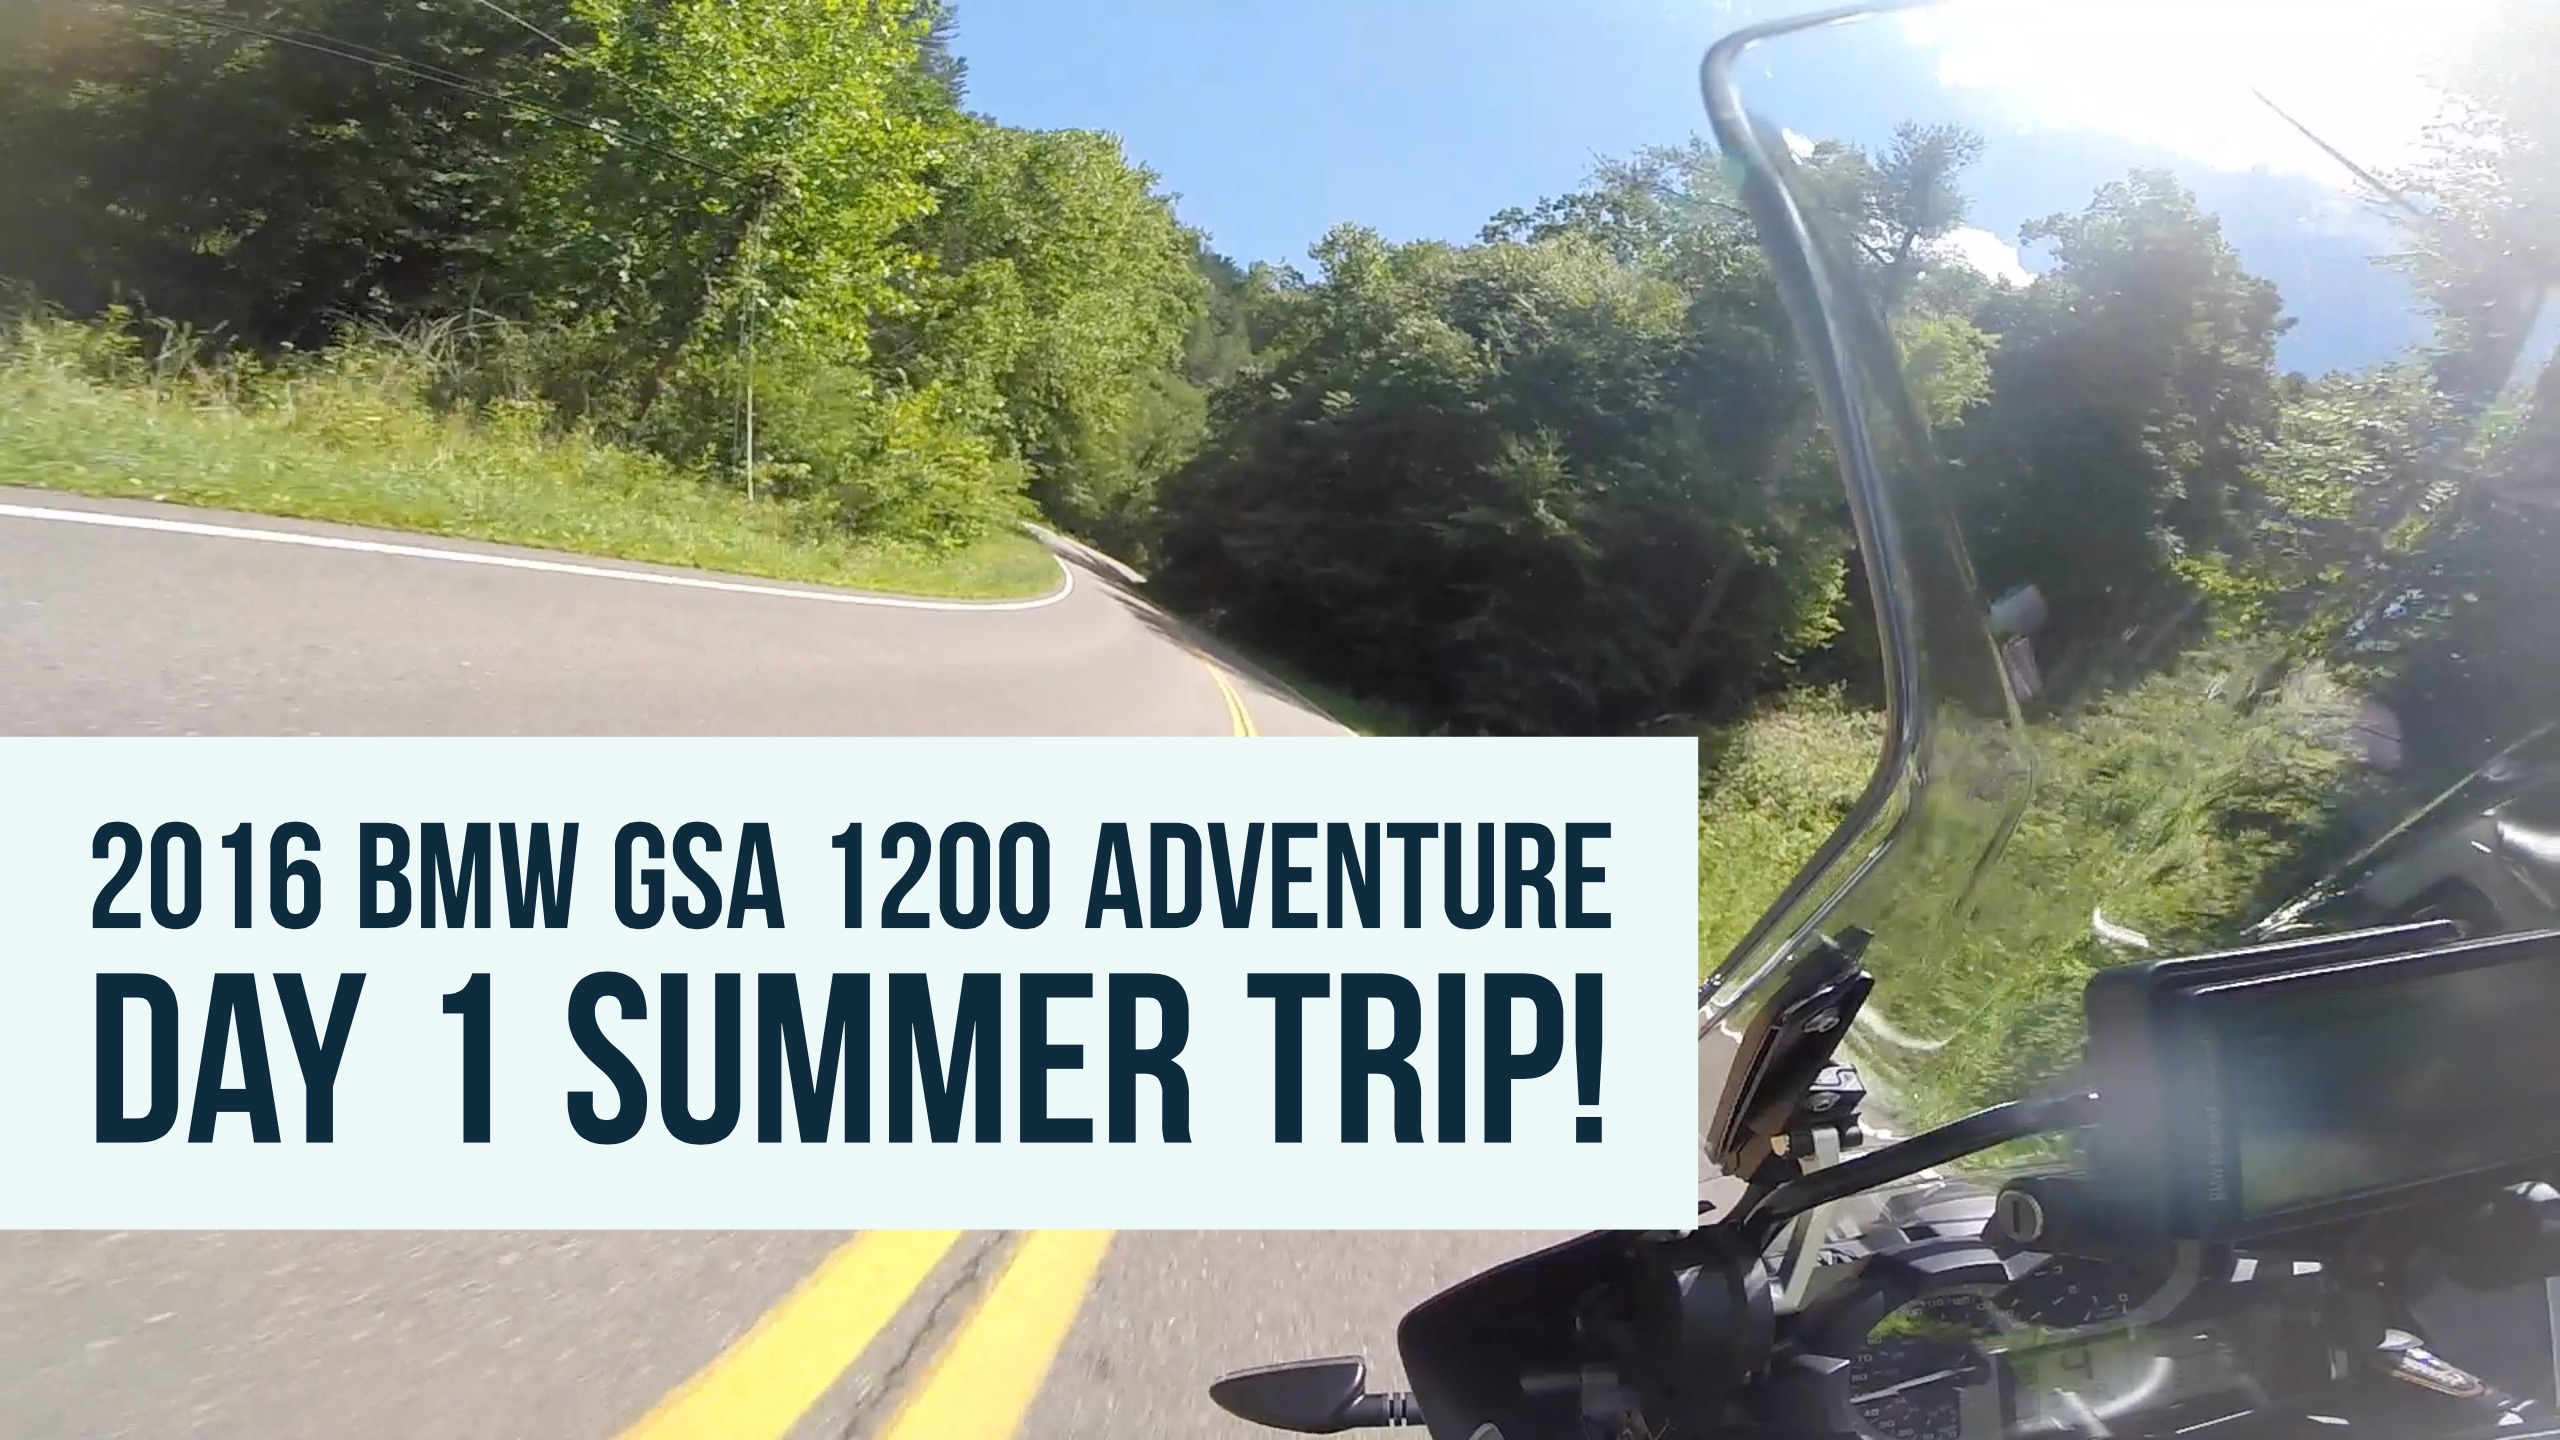 BMW 2016 GSA 1200 Adventure Day 1 Summer Trip!